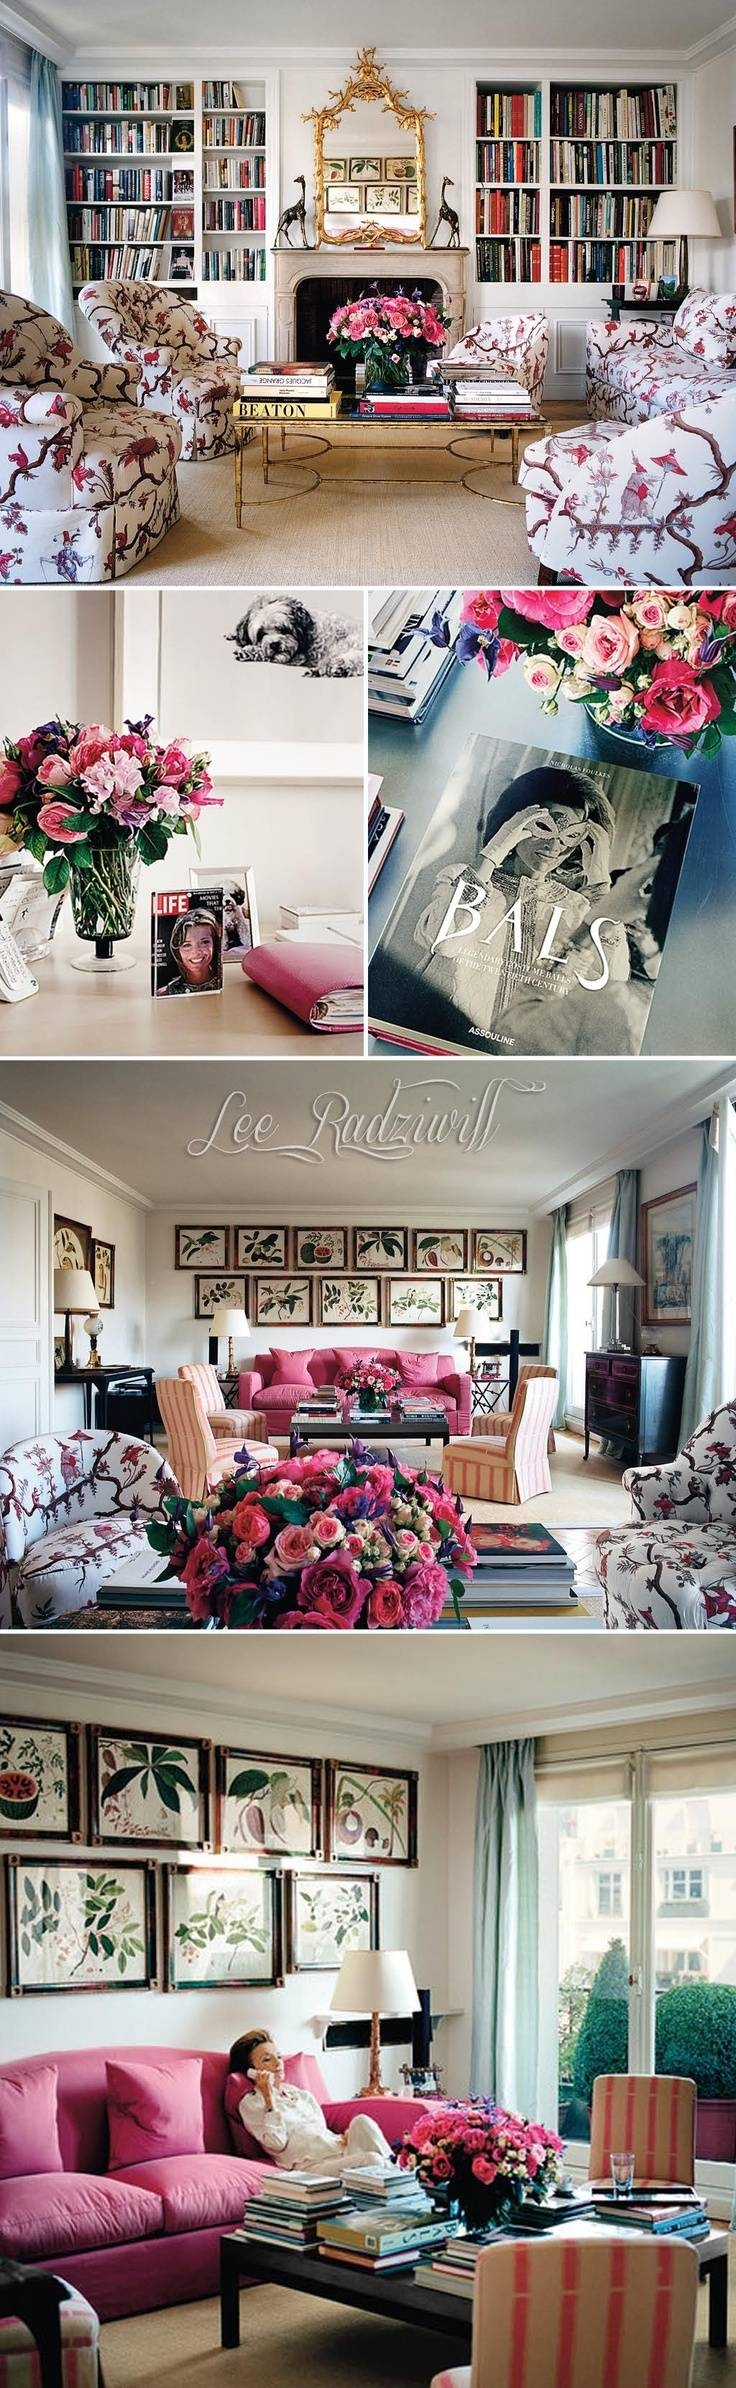 Best 25+ Floral Couch Ideas On Pinterest | Wall Murals Uk, Floral intended for Chintz Floral Sofas (Image 11 of 30)